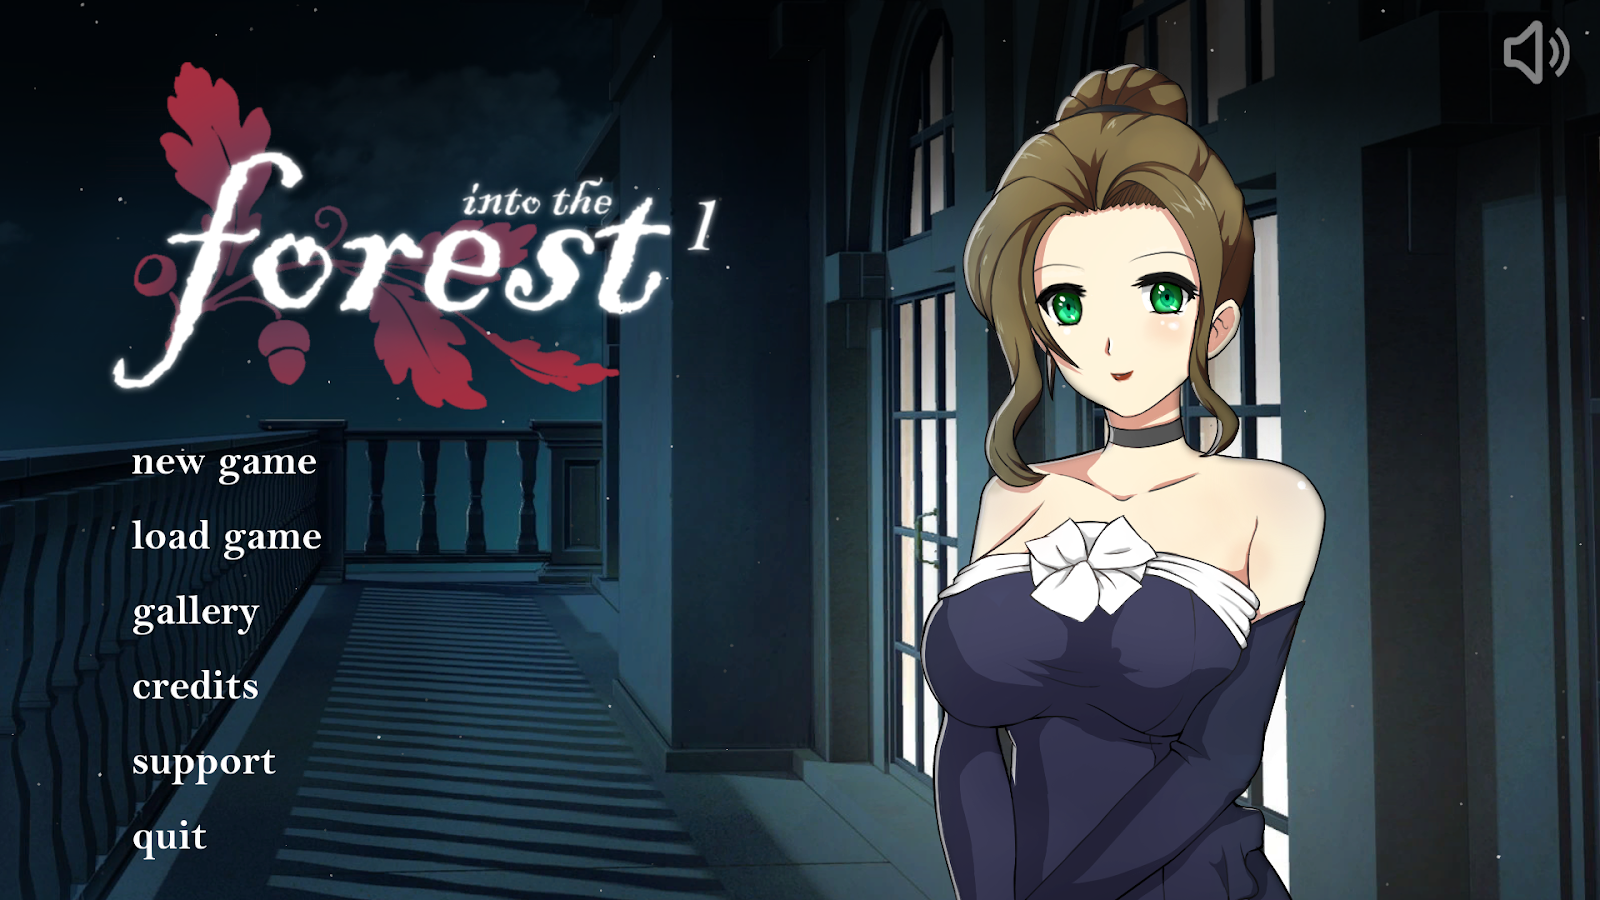 [2018][BabusGames] Into the Forest [18+][Ch.1]